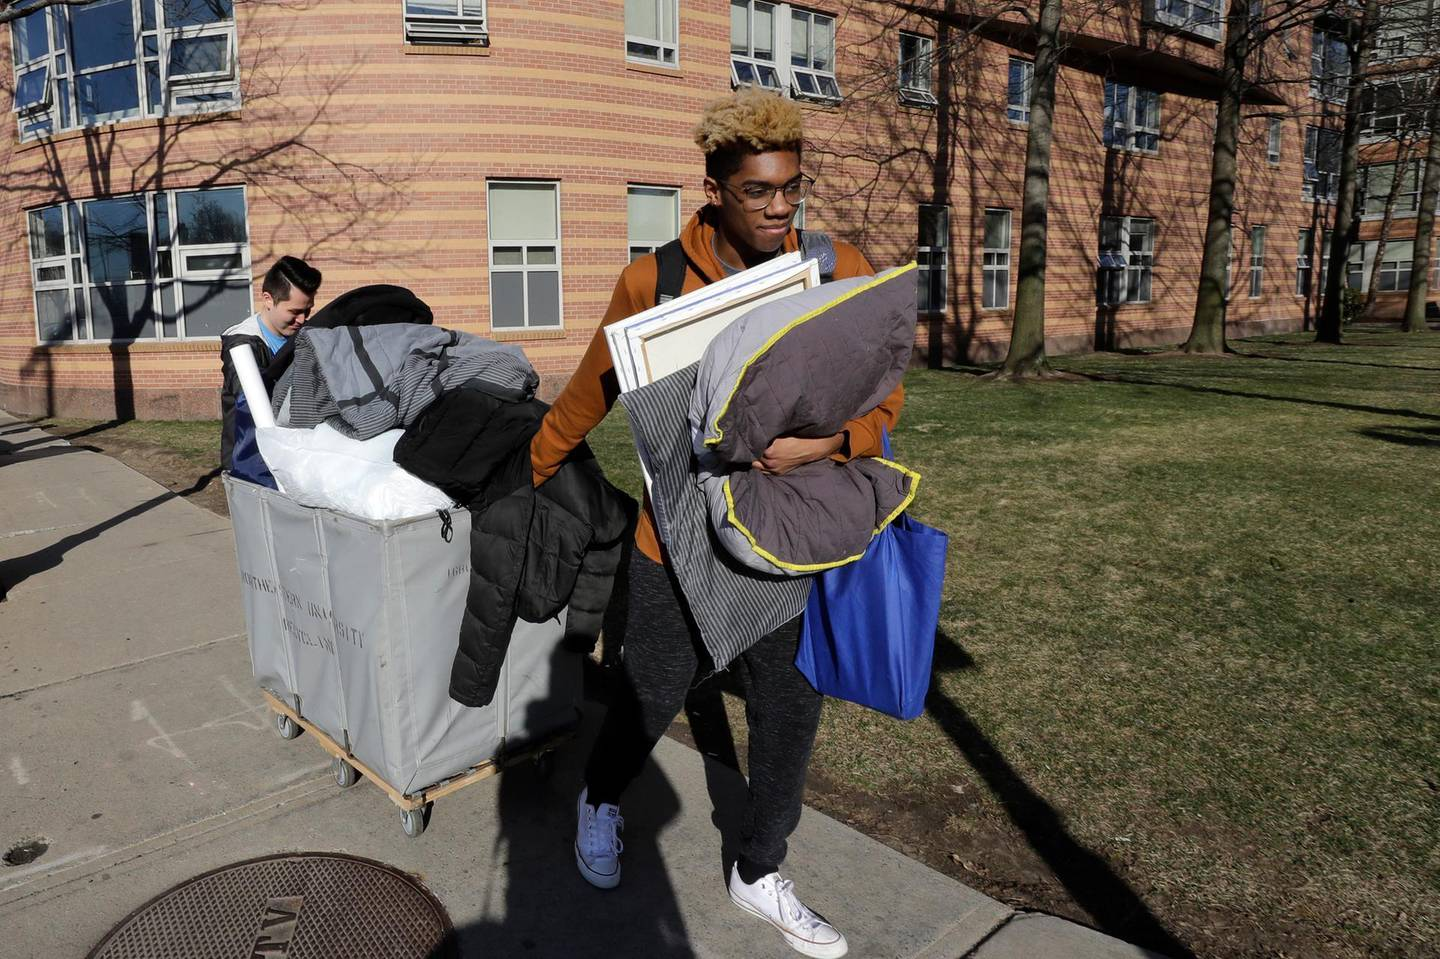 Northeastern University sophomore Philip Thomas, of Hamden, Conn., front, pulls a cart of belongings as he moves out of his residence hall as classmate Jarrett Anderson, of Las Vegas, left, assists him, Sunday, March 15, 2020, in Boston. Students have been asked by the school to move out of residence halls out of concern about the spread of the coronavirus. For most people, the new coronavirus causes only mild or moderate symptoms, such as fever and cough. For some, especially older adults and people with existing health problems, it can cause more severe illness, including pneumonia. The vast majority of people recover from the new virus. (AP Photo/Steven Senne)